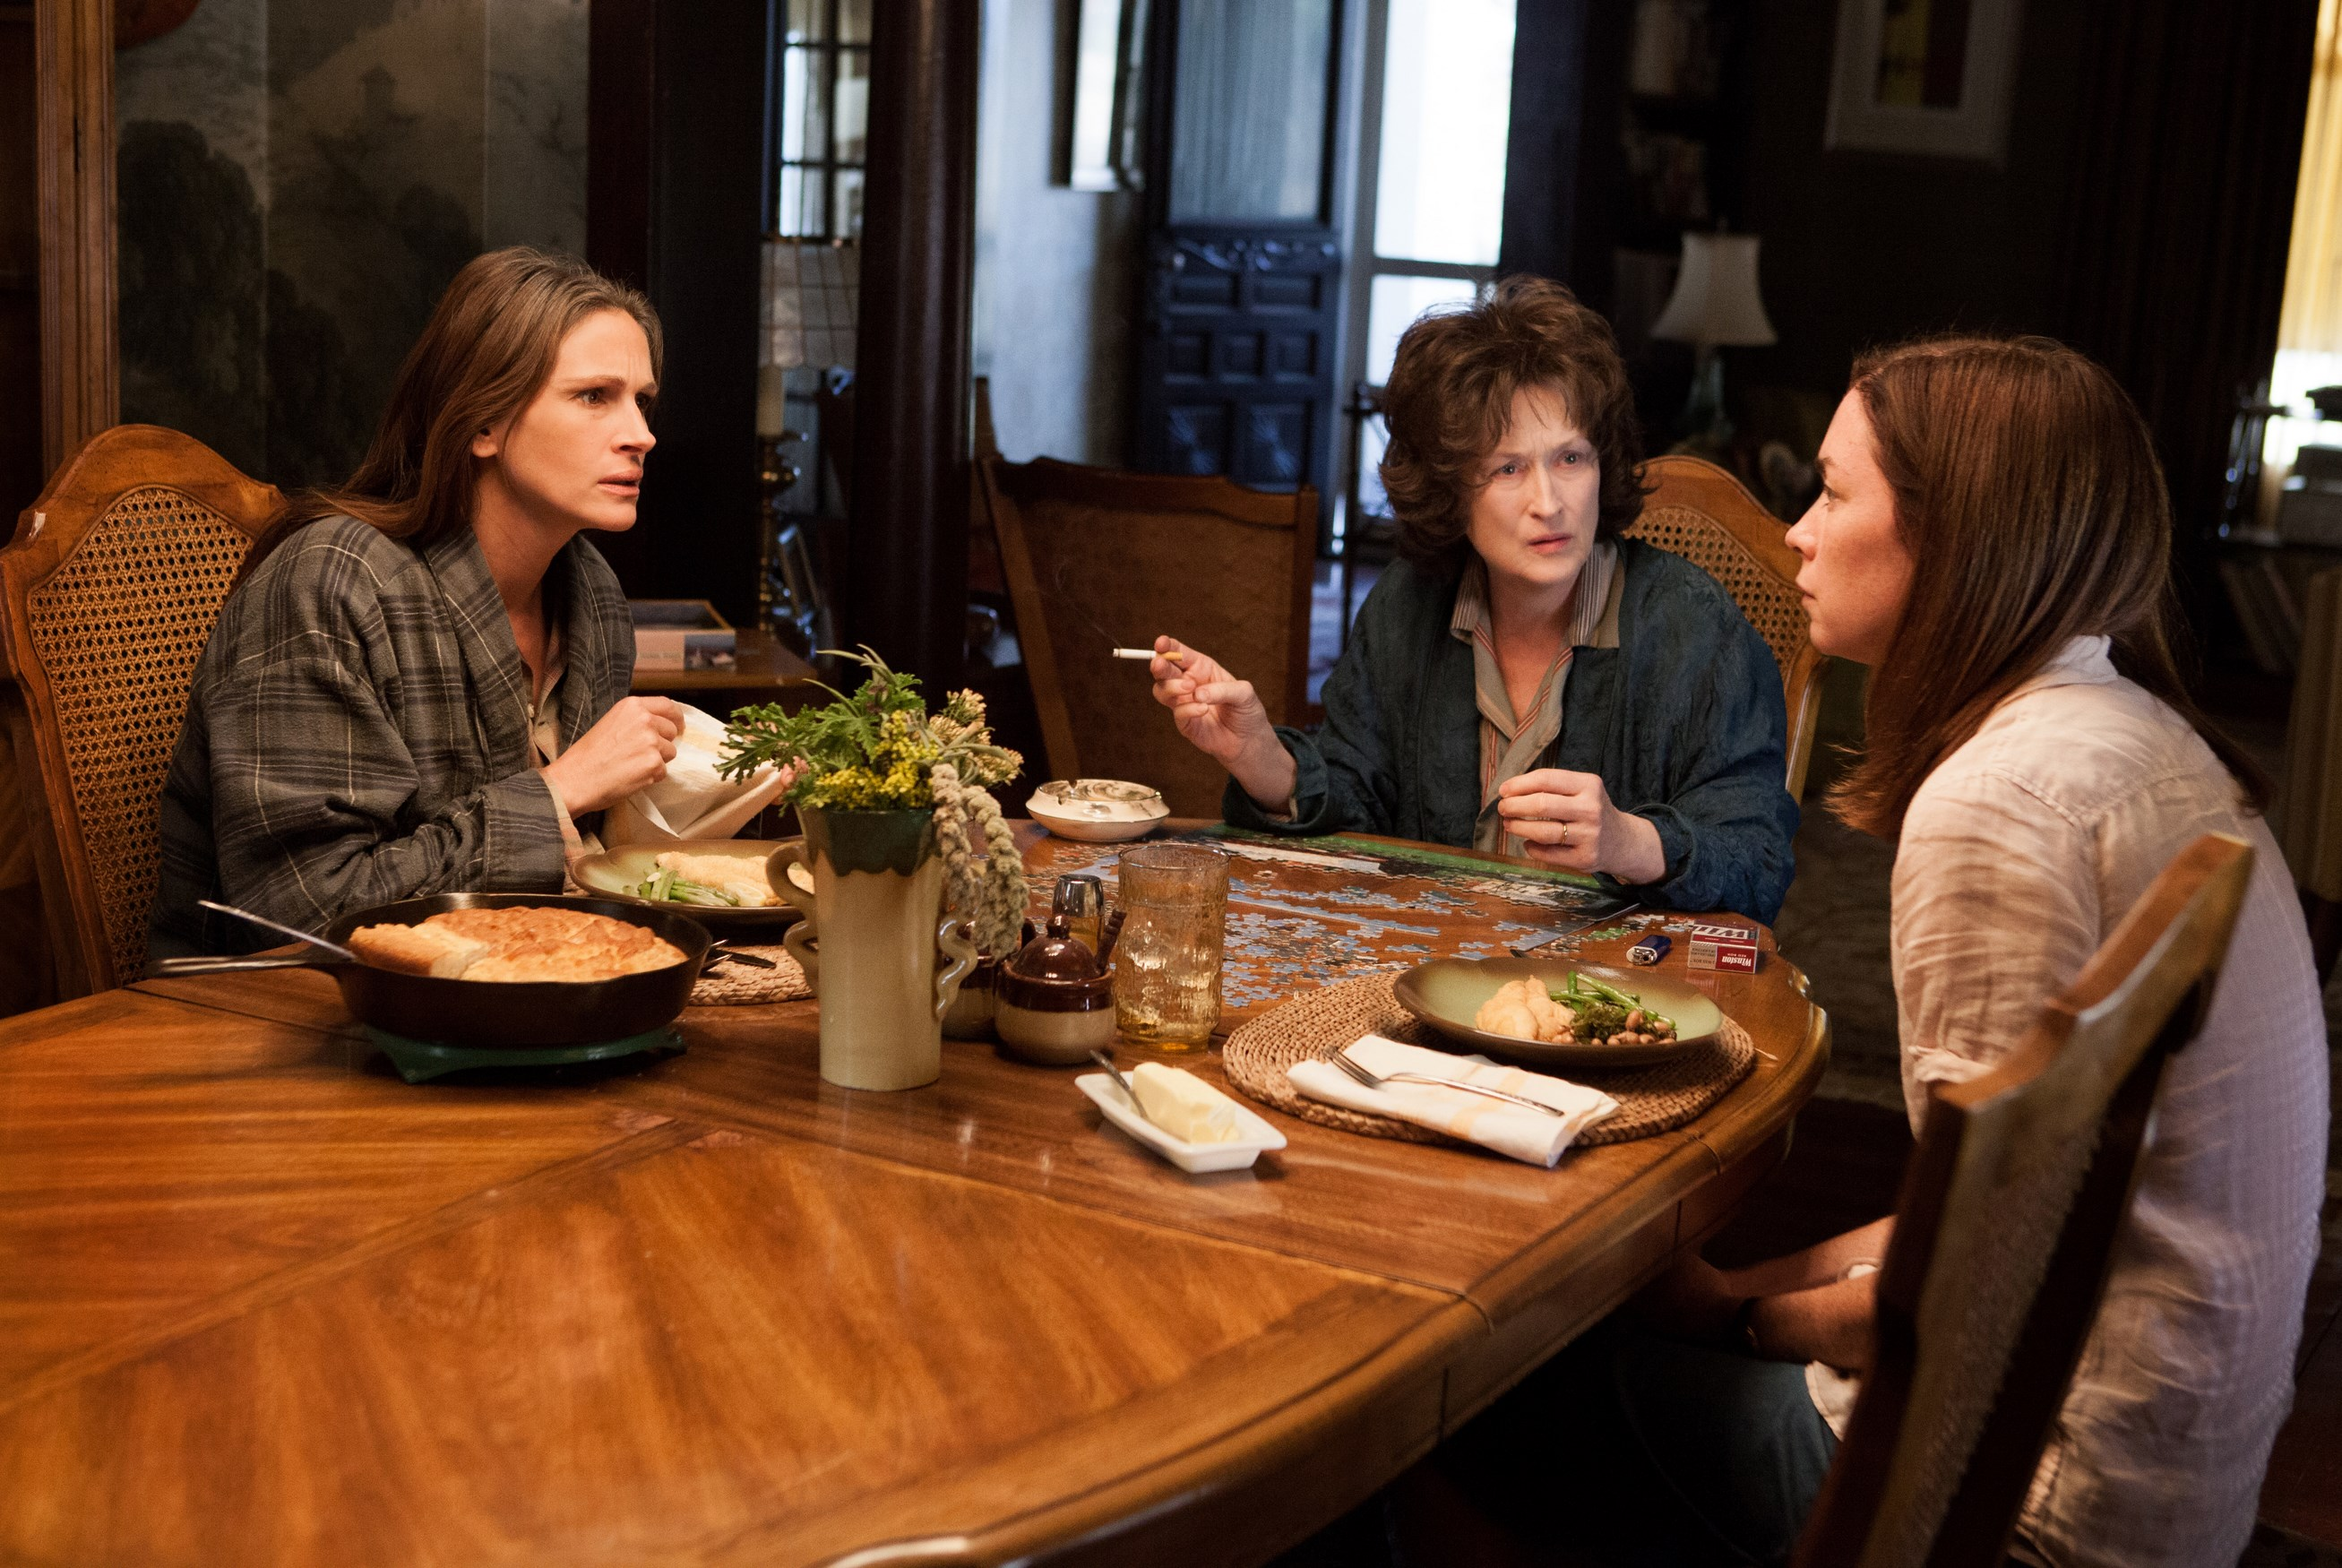 August: Osage County & Blue Jasmine